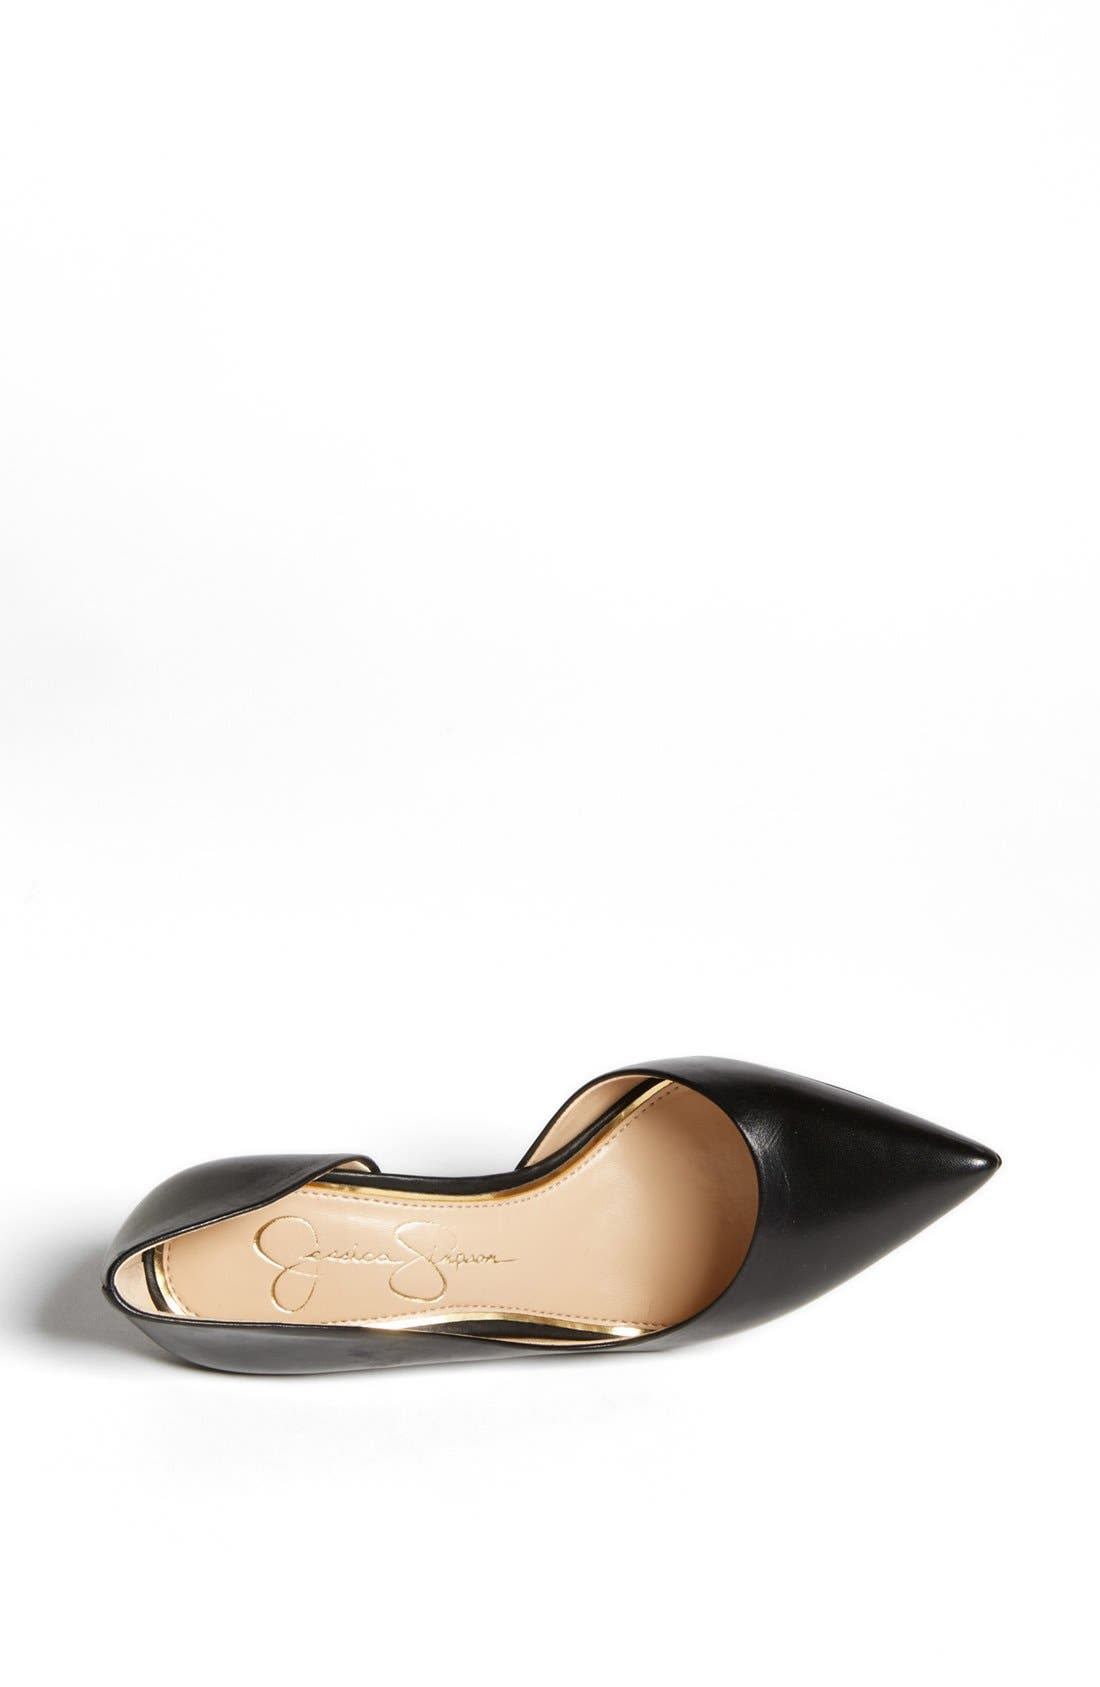 JESSICA SIMPSON,                             'Claudette' Half d'Orsay Pump,                             Alternate thumbnail 6, color,                             001